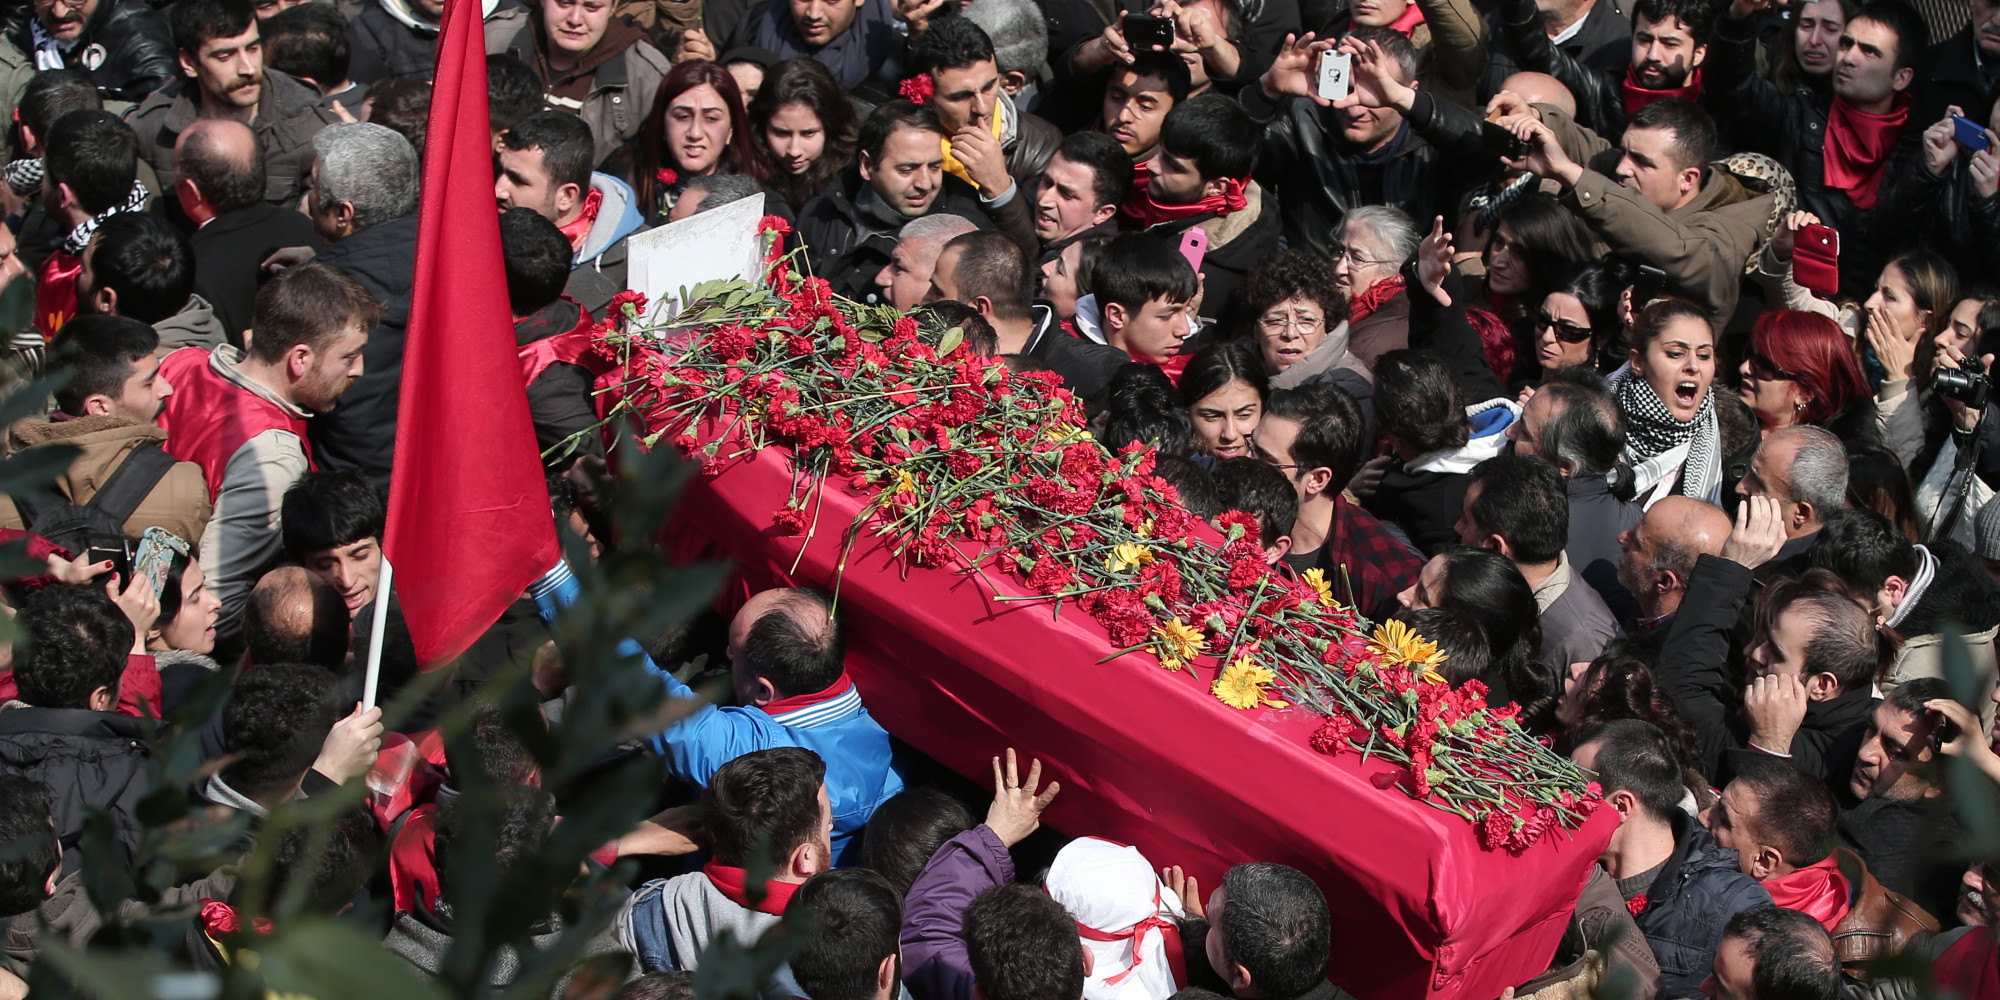 The people carry the coffin of Berkin Elvan, a Turkish teenager who was in a coma since being hit in the head by a tear gas canister fired by police during the summer's anti-government protests, during his funeral in Istanbul, Turkey, Wednesday, March 12, 2014. On Wednesday, thousands converged in front of a house of worship calling for Prime Minister Recep Tayyip Erdogan to resign.(AP Photo/Emrah Gurel)